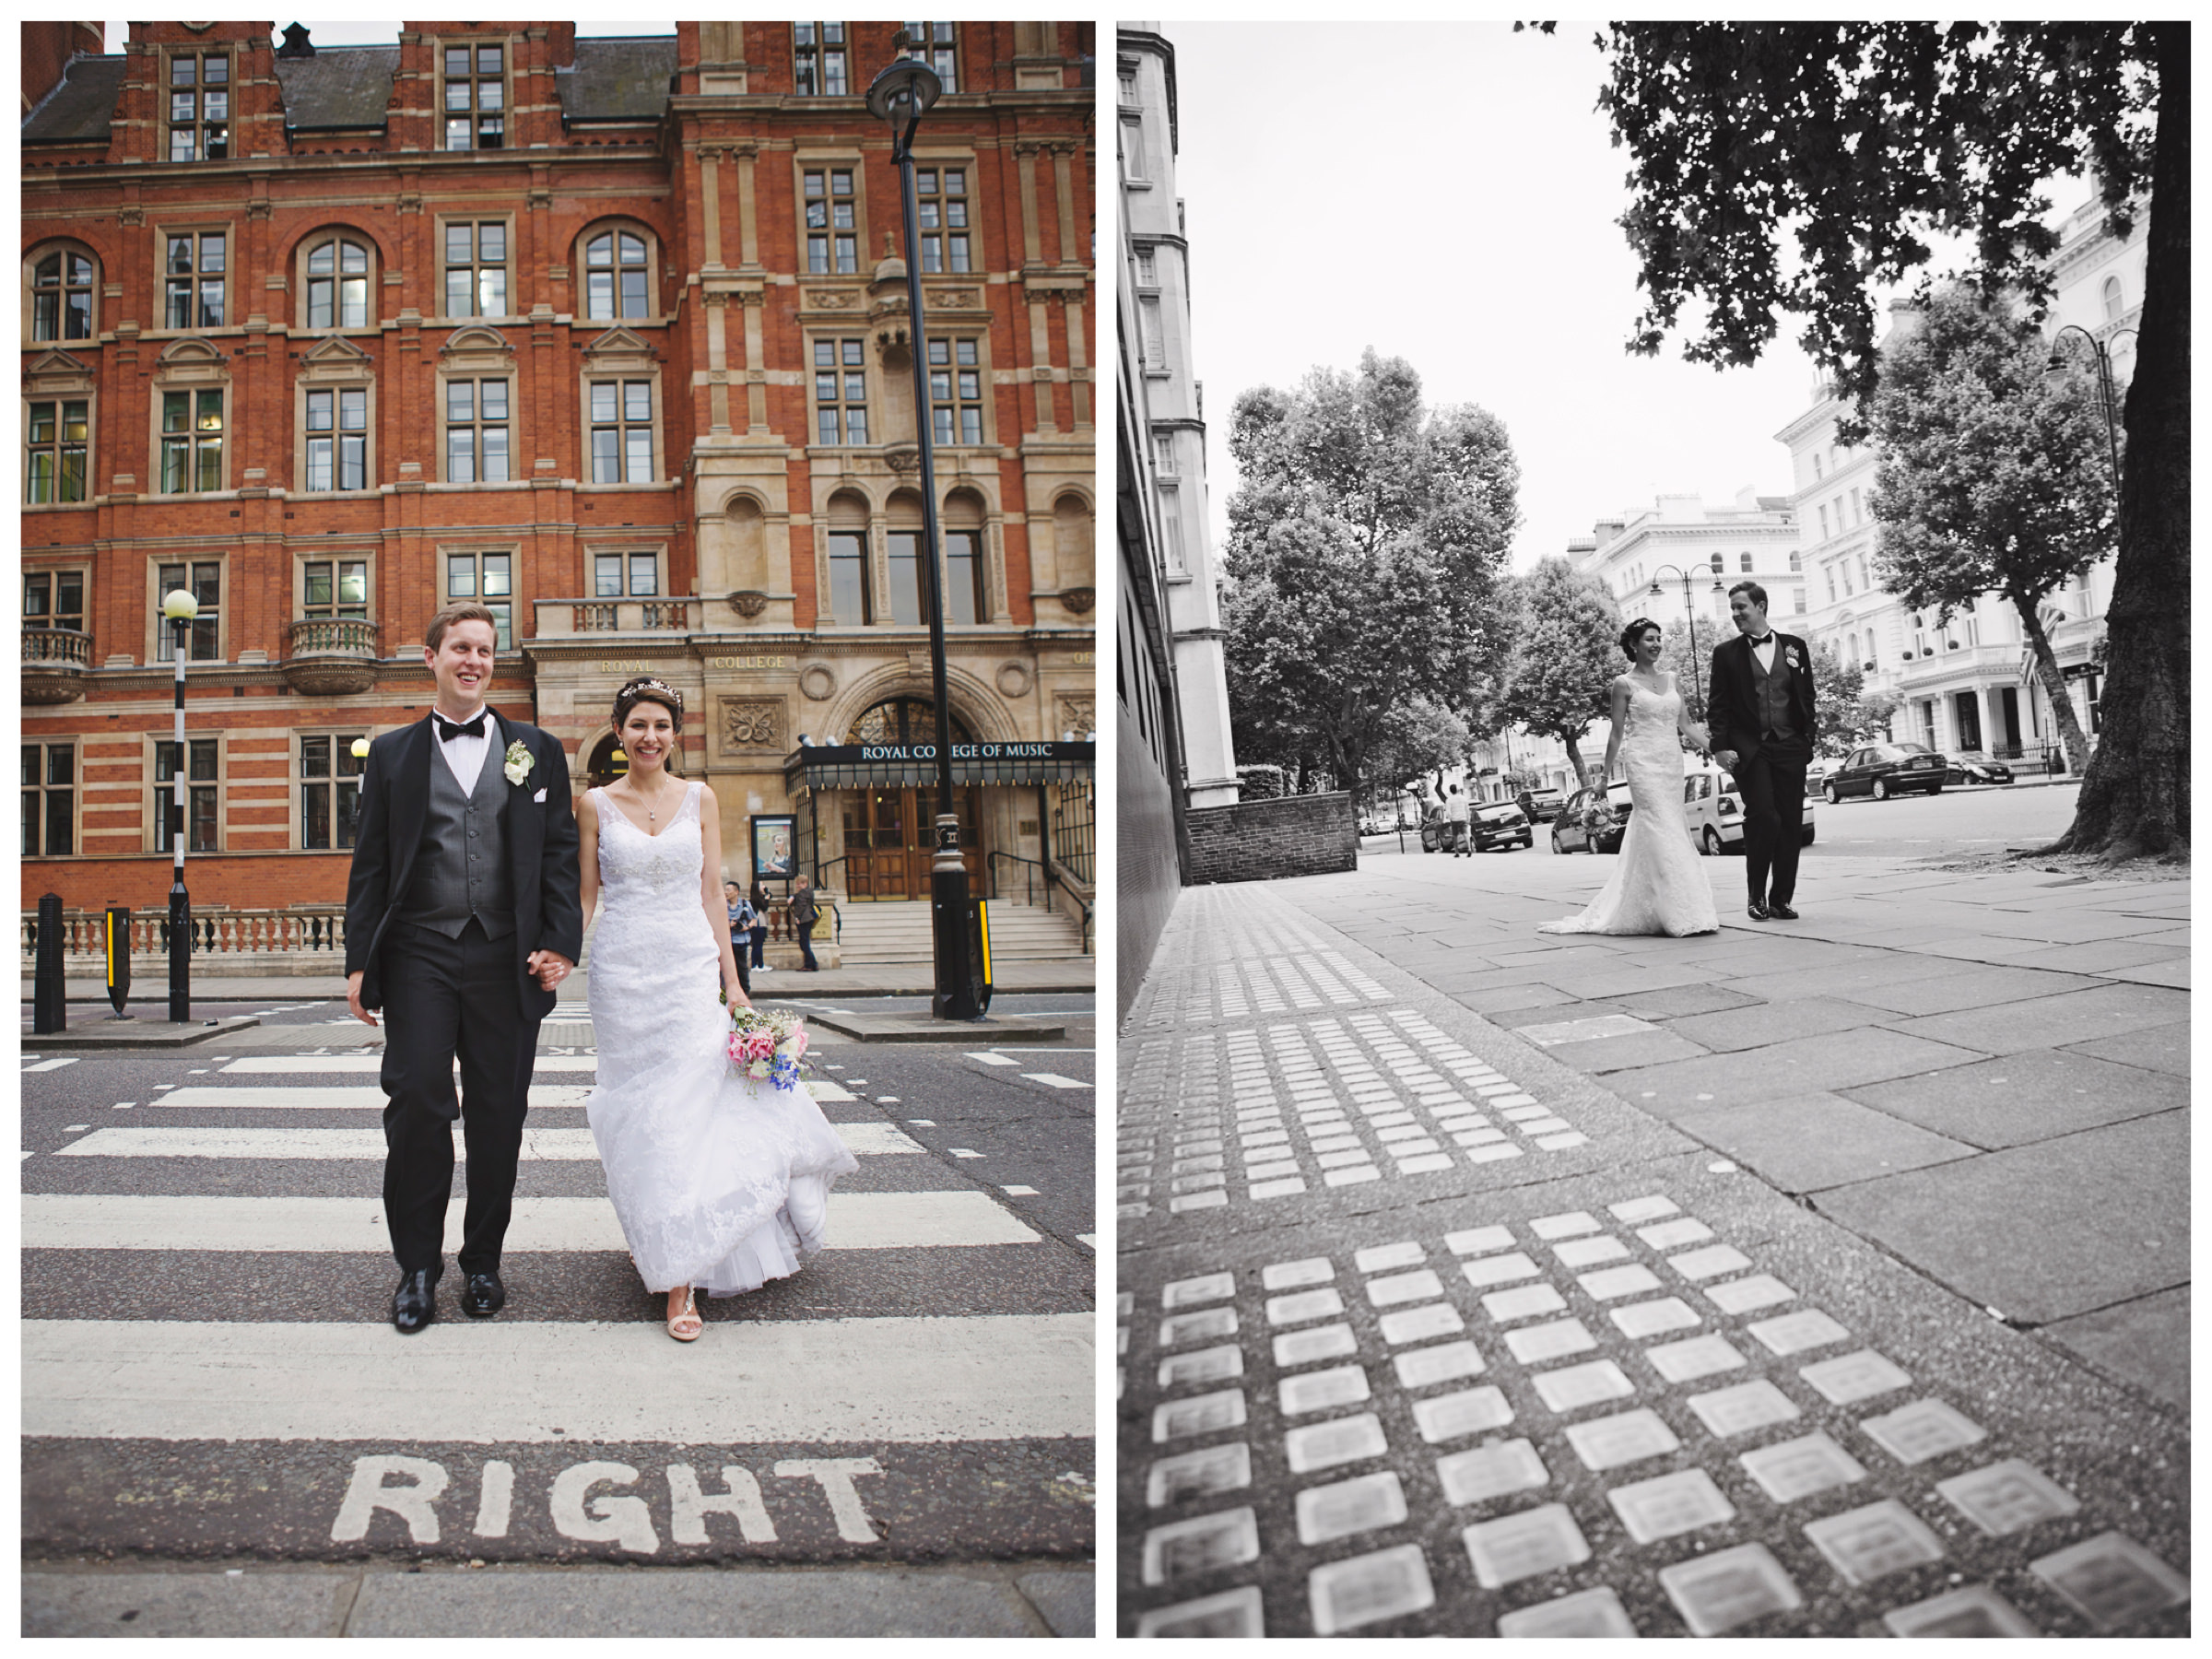 Kensington Wedding Photographer 13